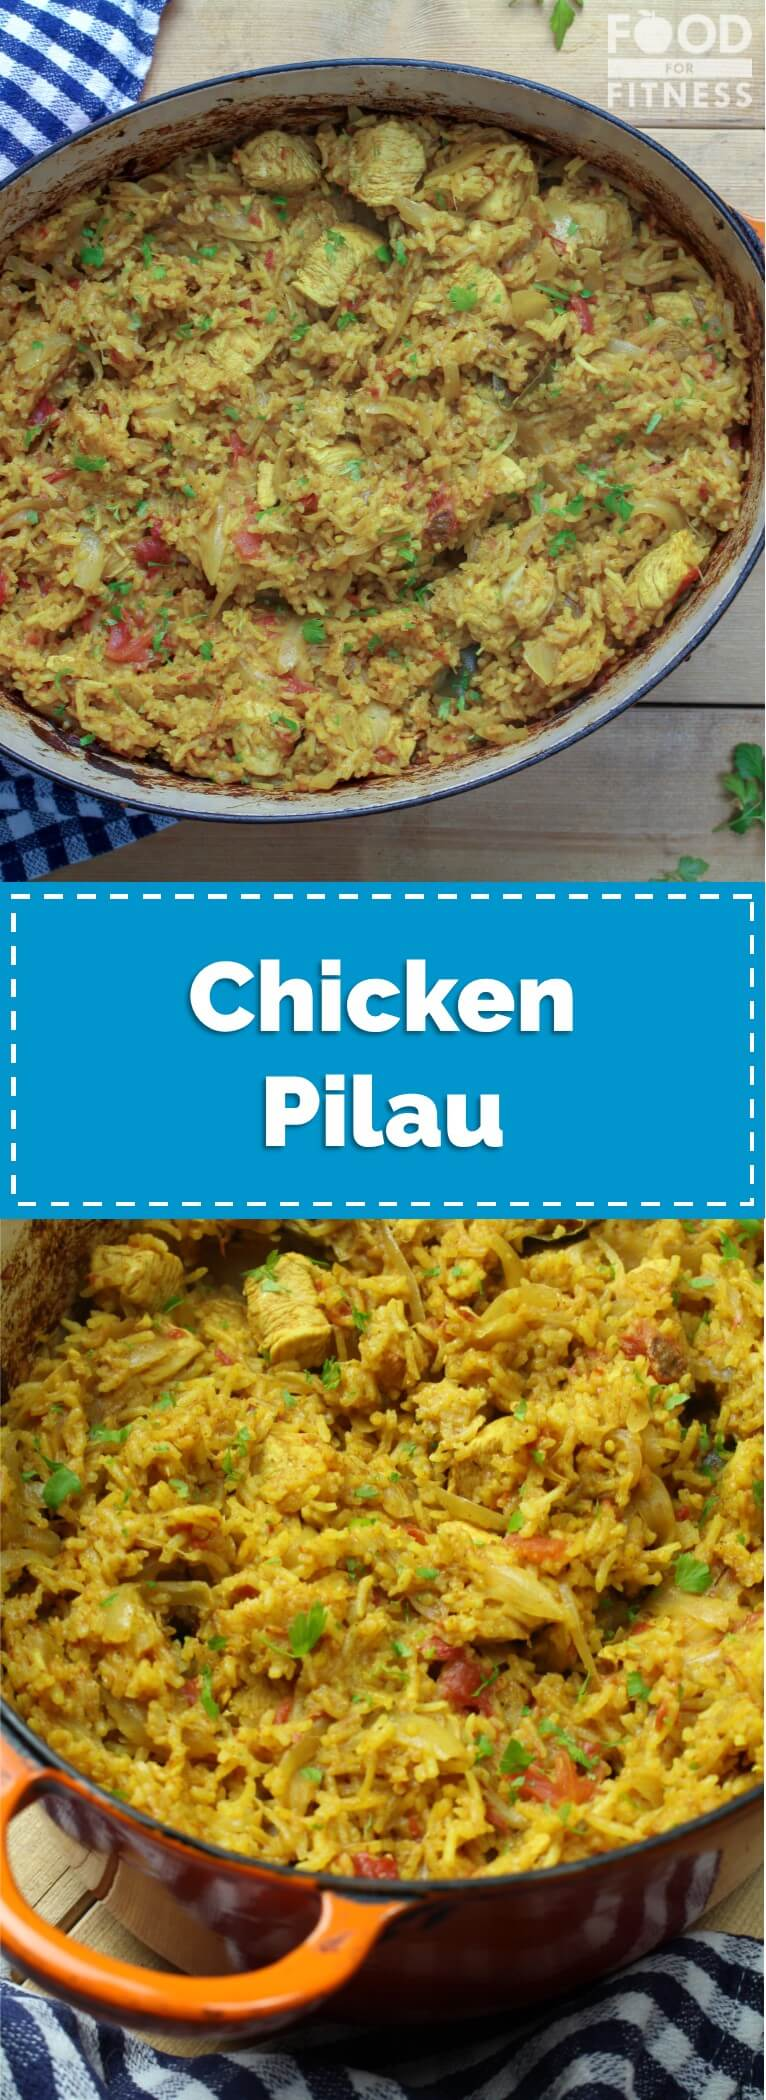 Authentic Chicken Pilau Recipe | #chicken #healthy #recipe